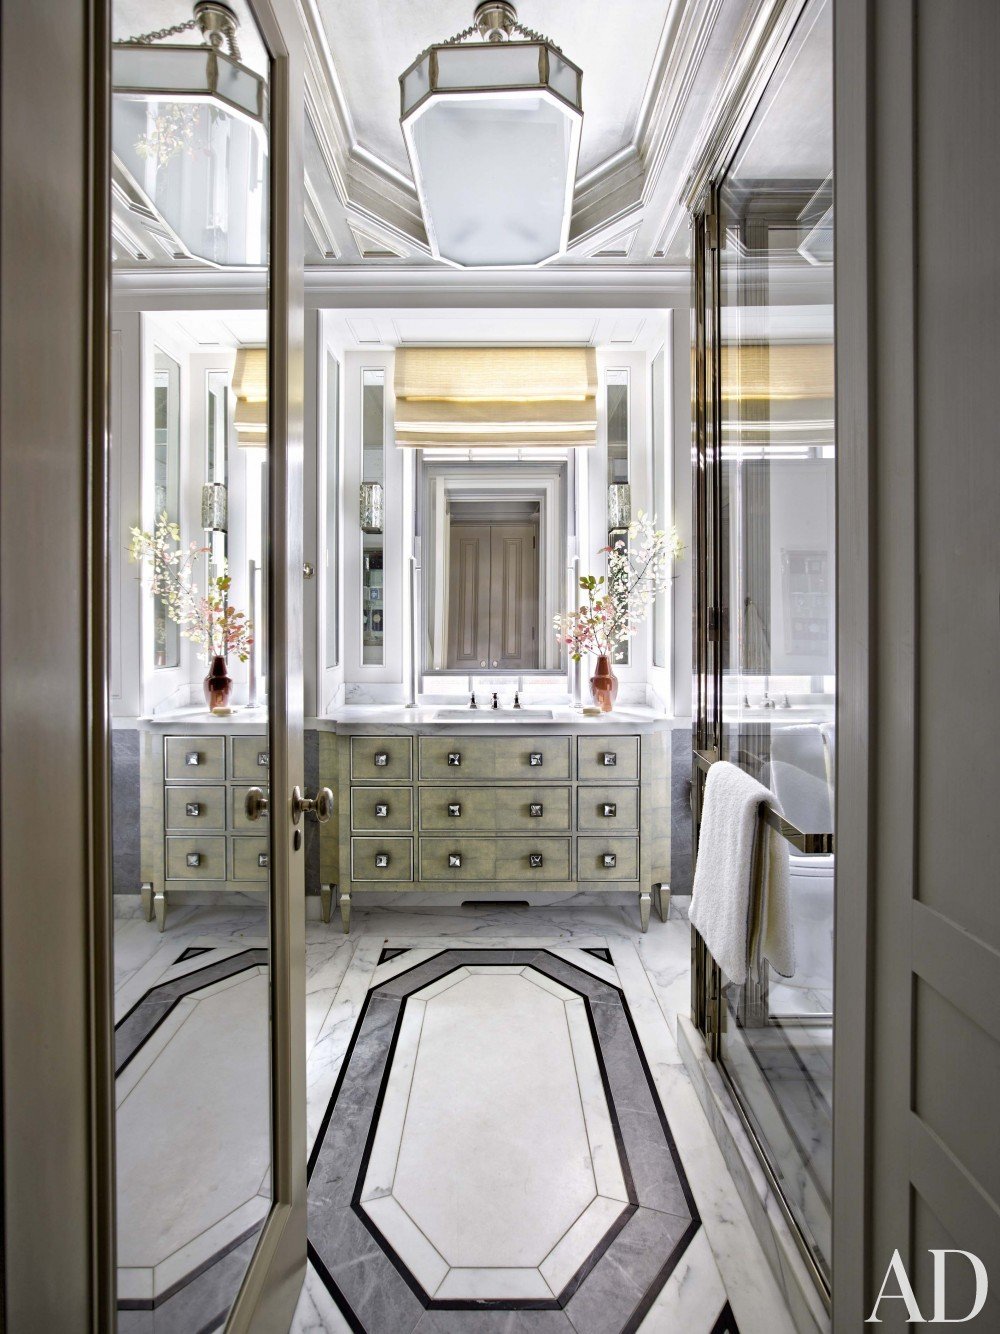 Modern Bathroom by Michael S. Smith and Ferguson & Shamamian Architects in New York, NY